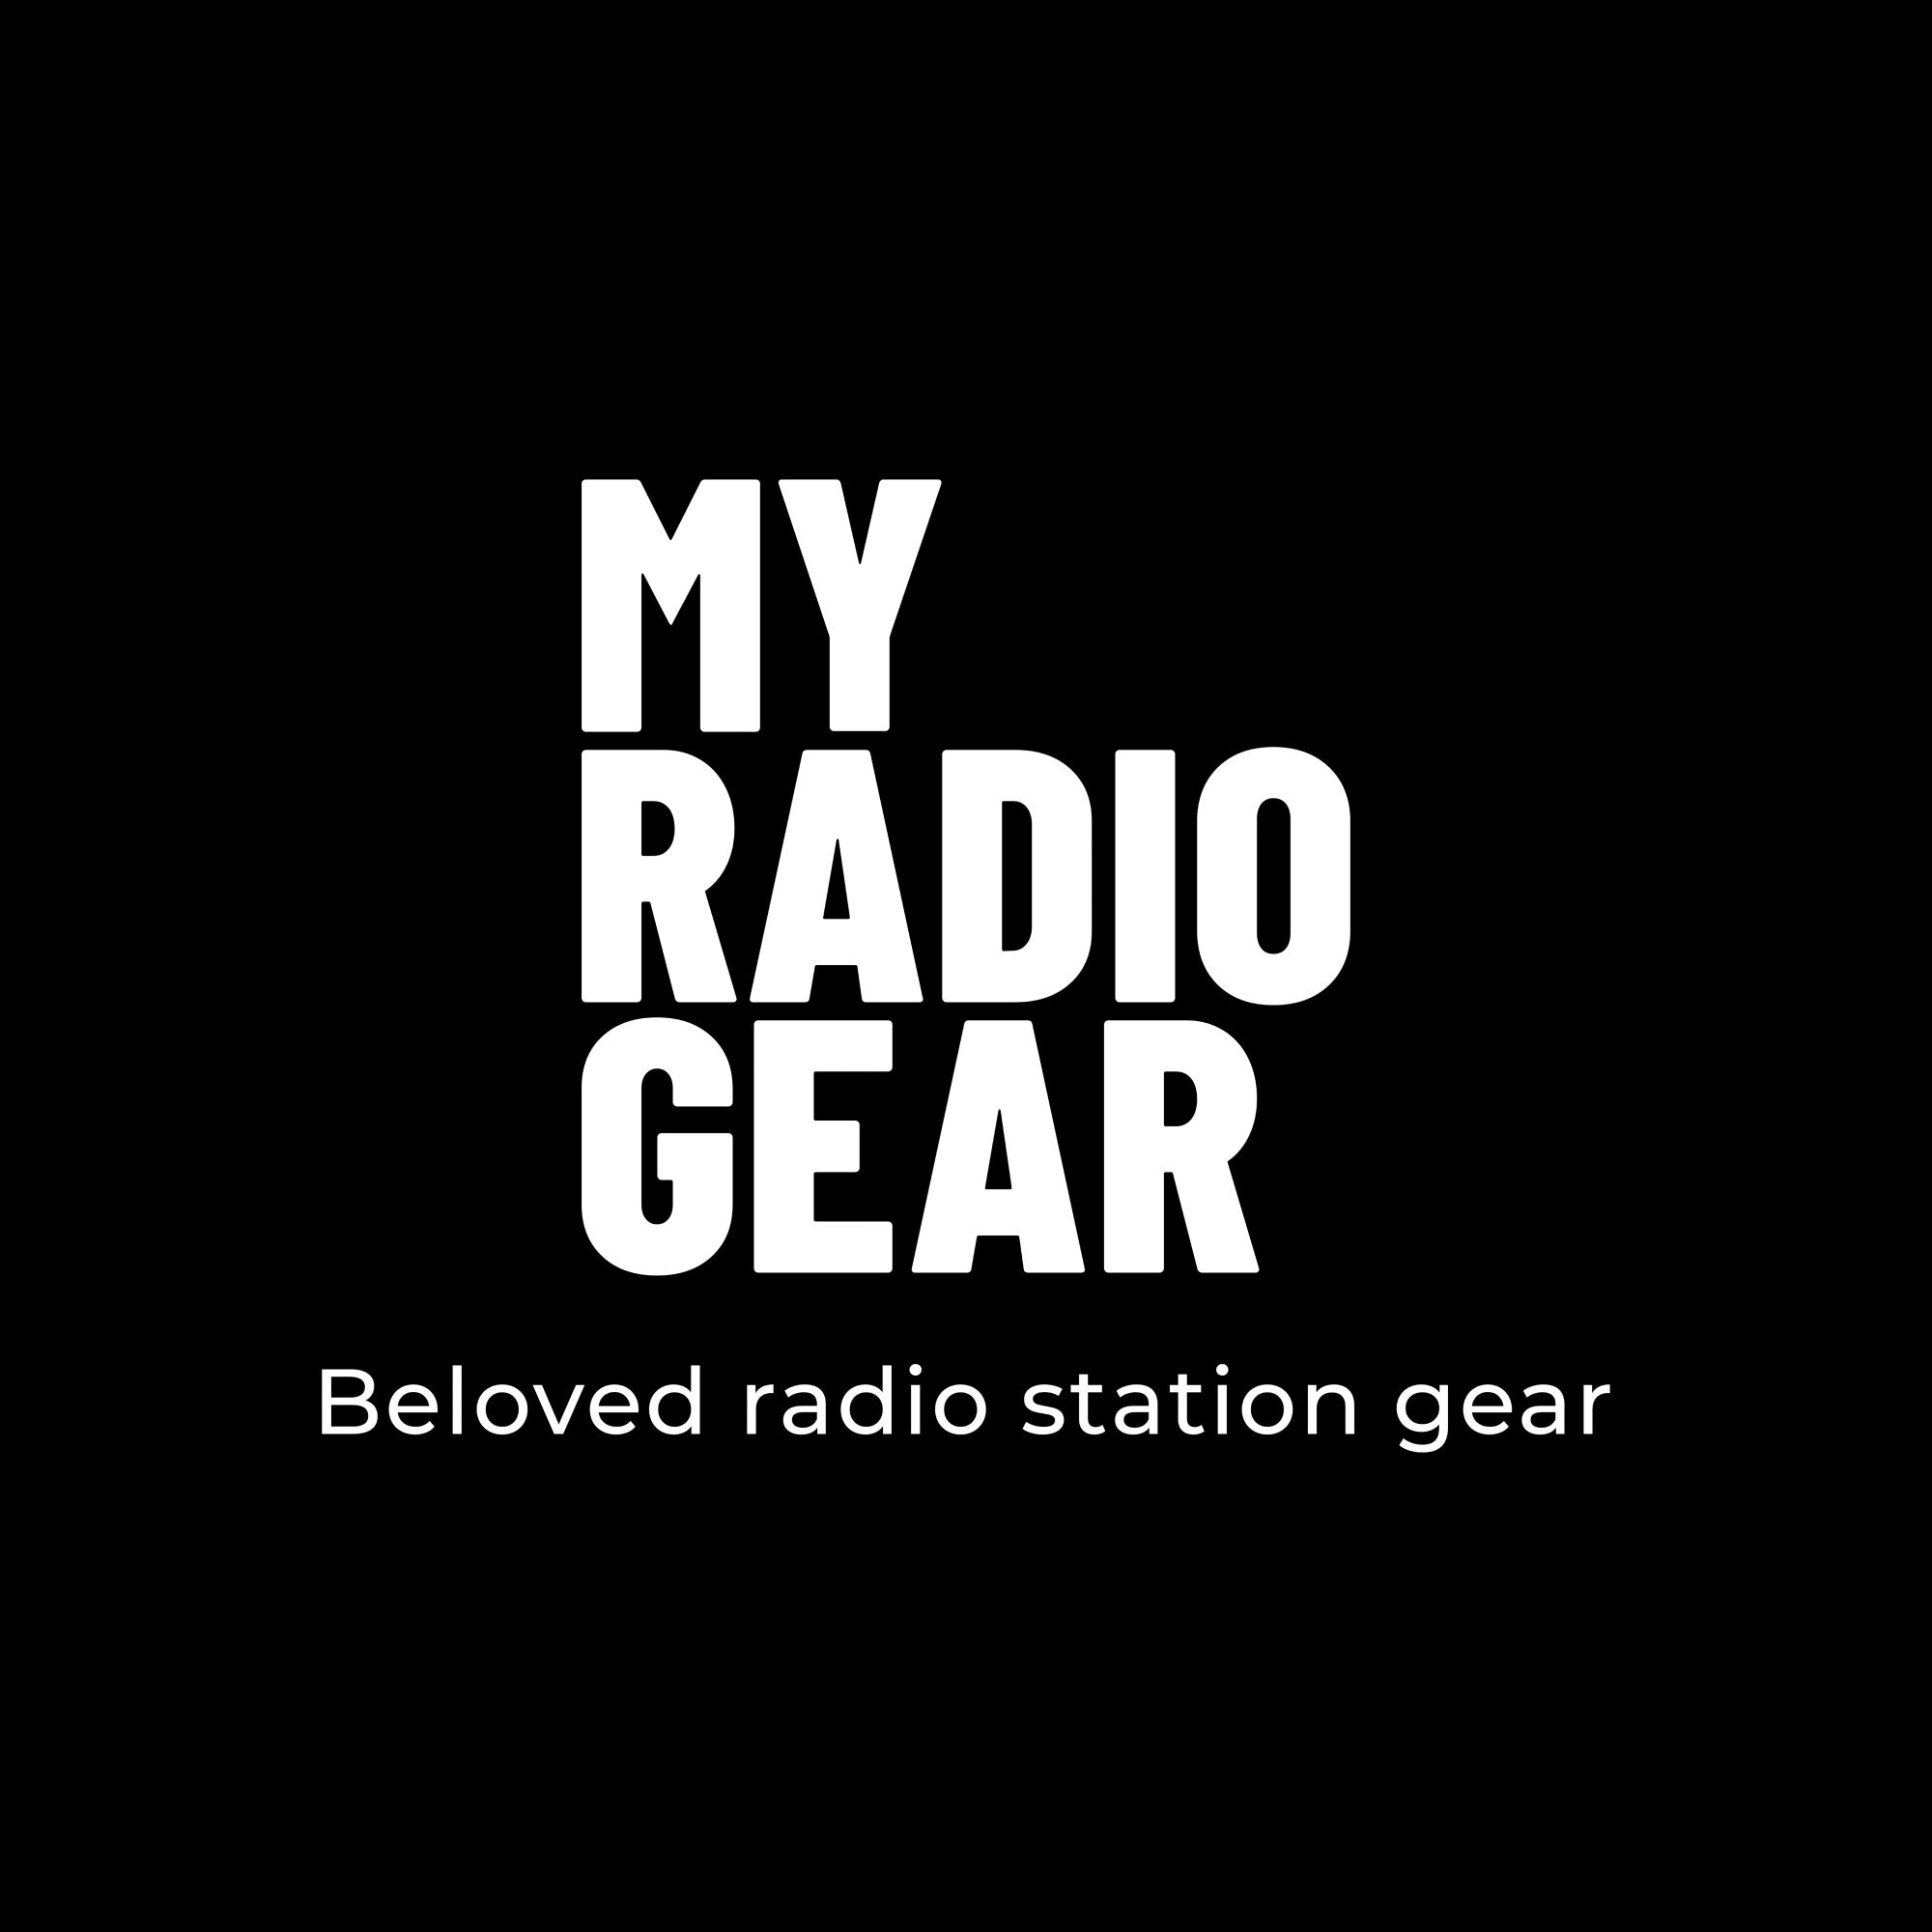 My Radio Gear